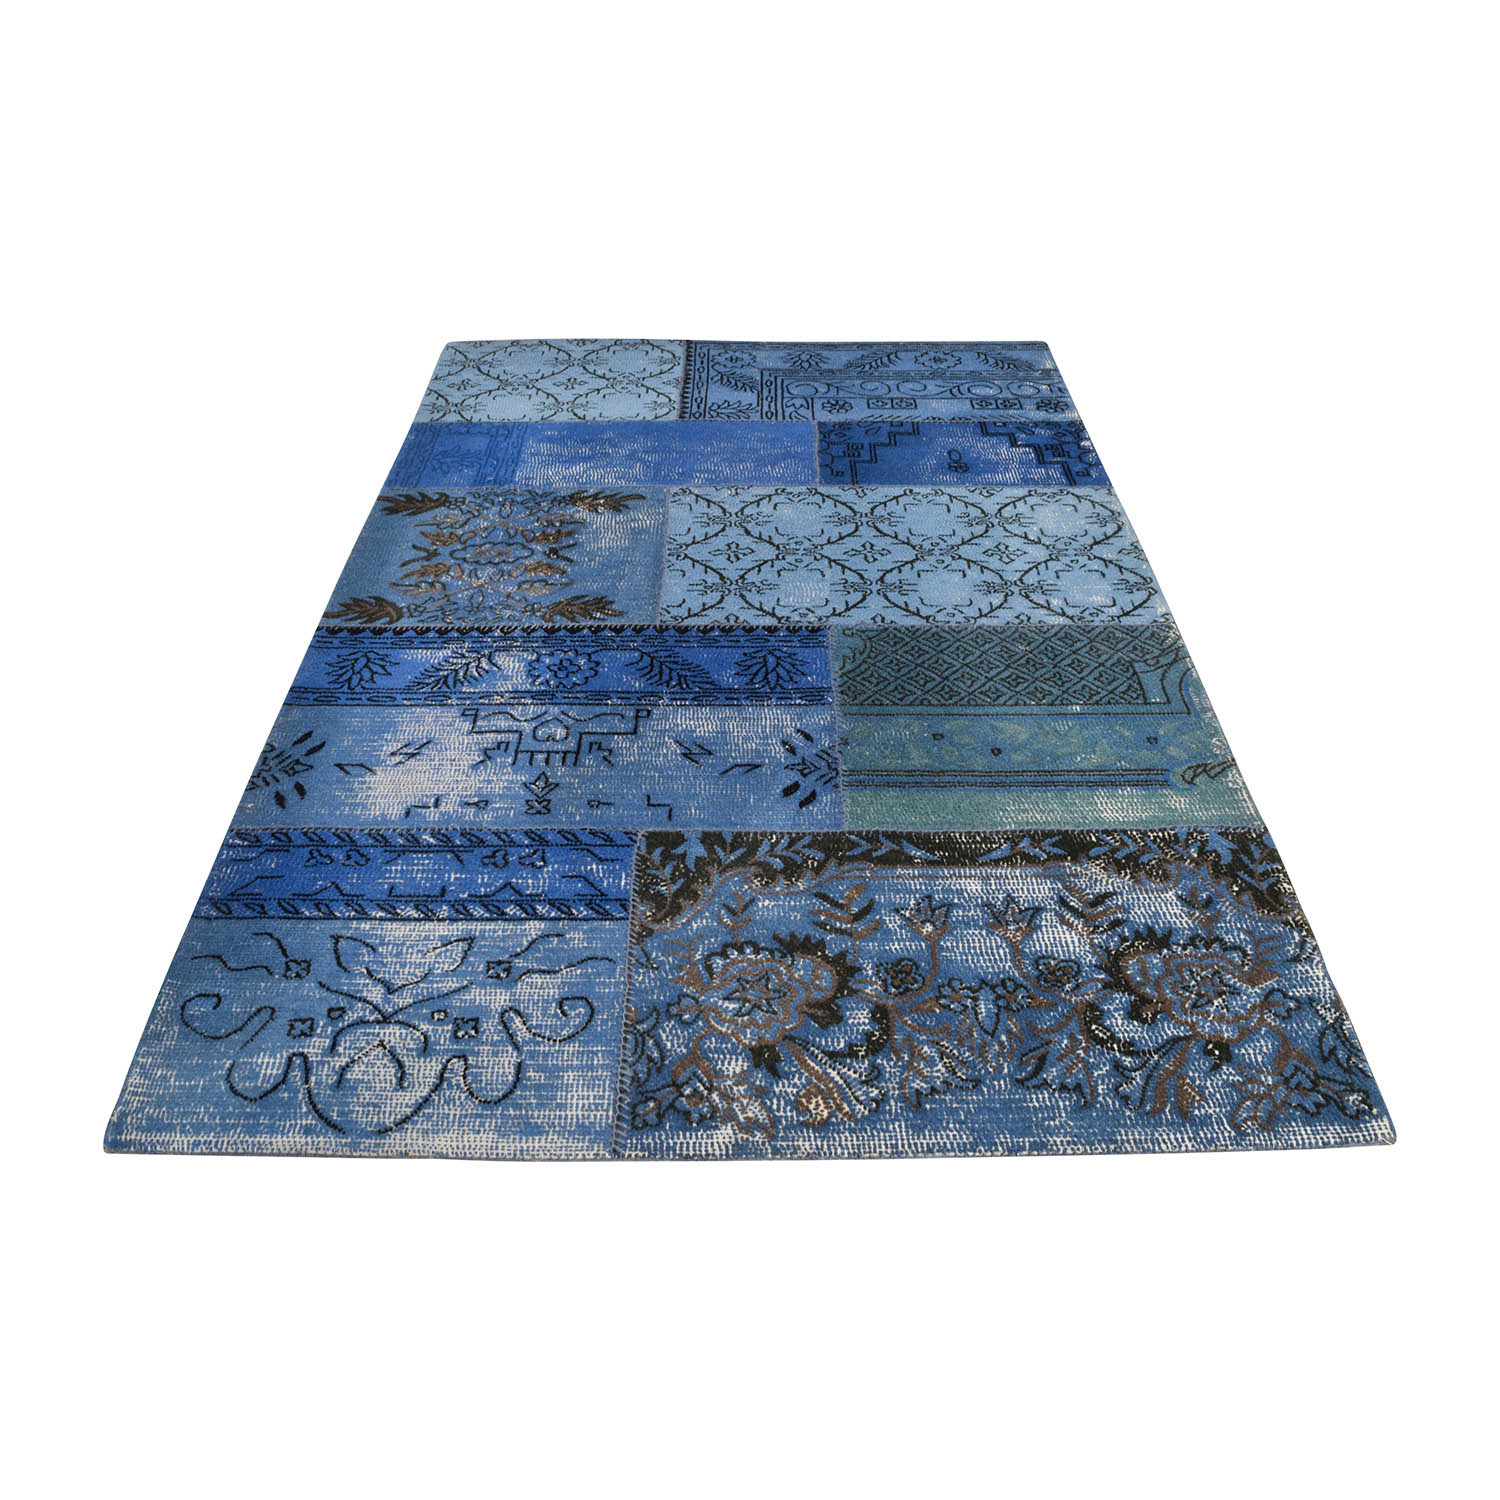 Relatively 66% OFF - West Elm West Elm Distressed Cadiz Rug / Decor HV22